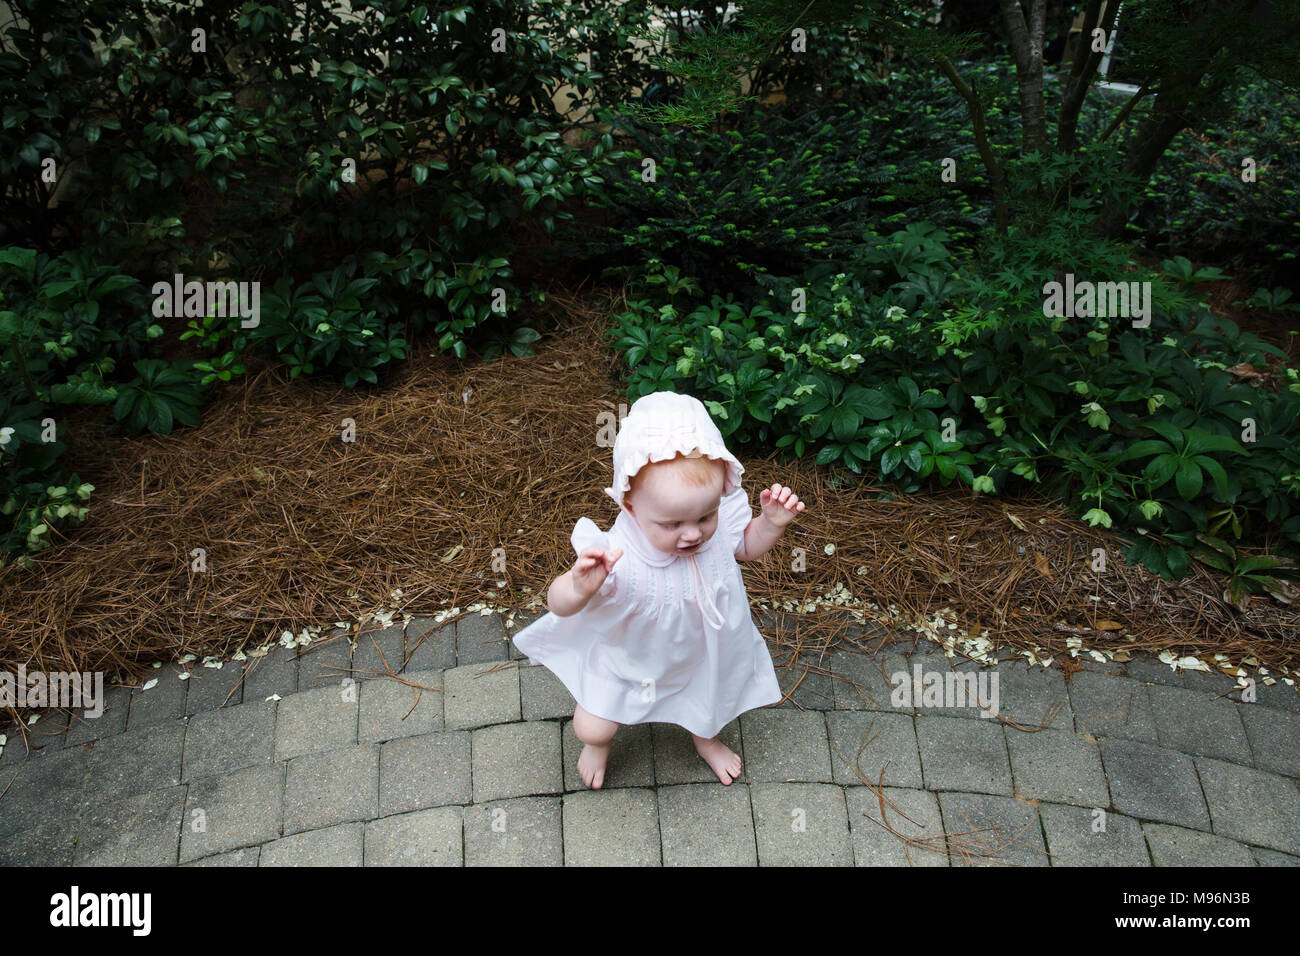 Baby playing with bushes and branches - Stock Image